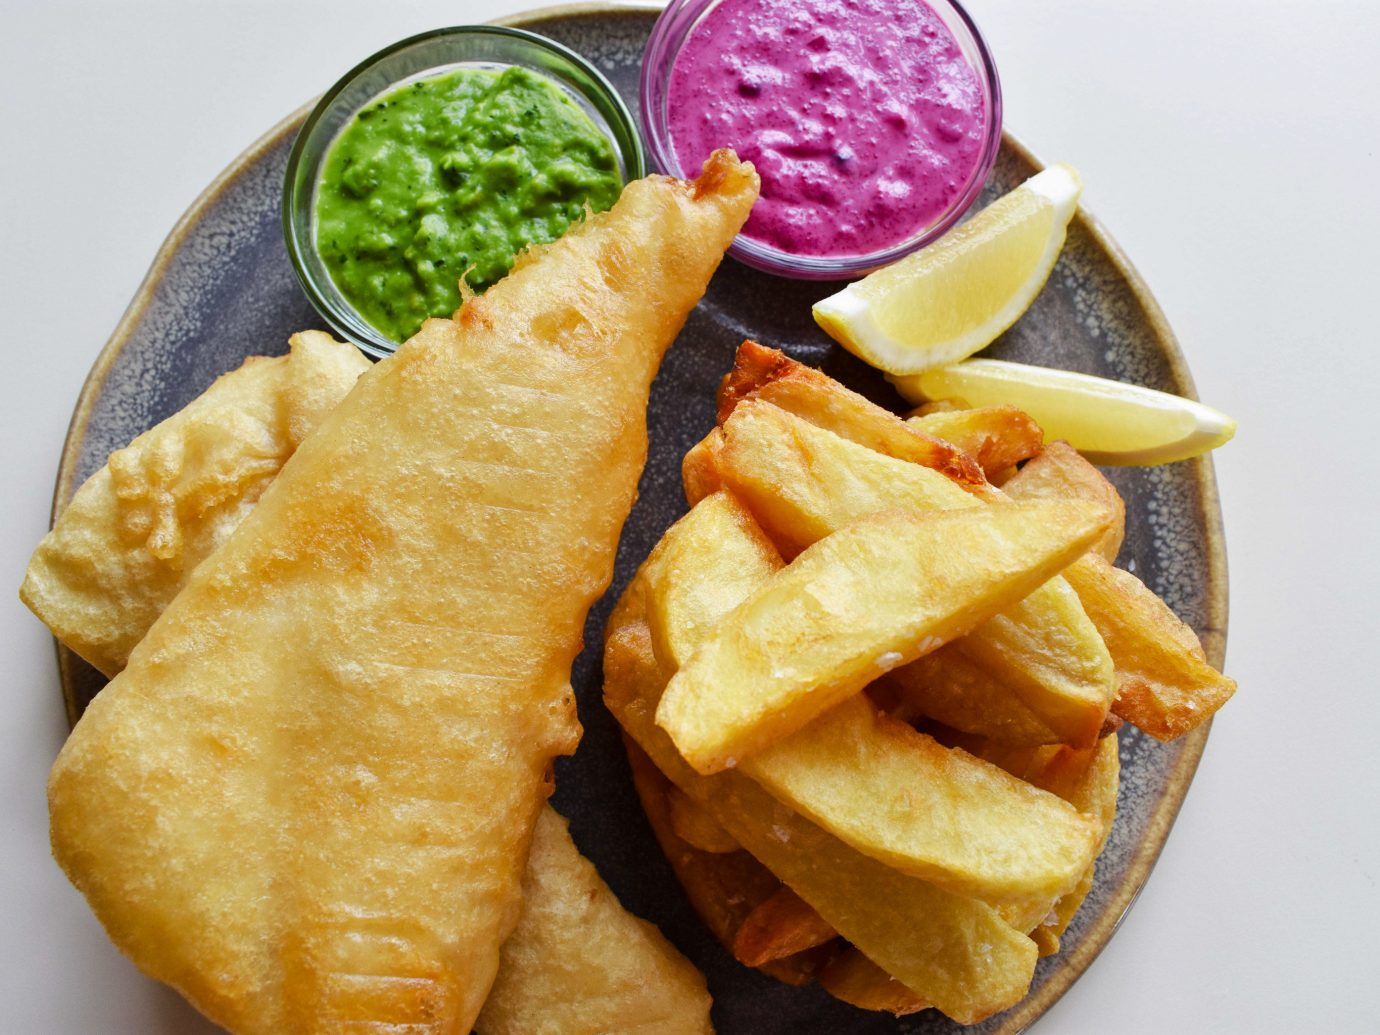 Edinburgh Hotels Jetsetter Guides Scotland Travel Tips Trip Ideas food dish cuisine junk food side dish fast food fried food fruit kids meal french fries full breakfast deep frying potato wedges vegetarian food totopo fish and chips dip american food snack food sliced